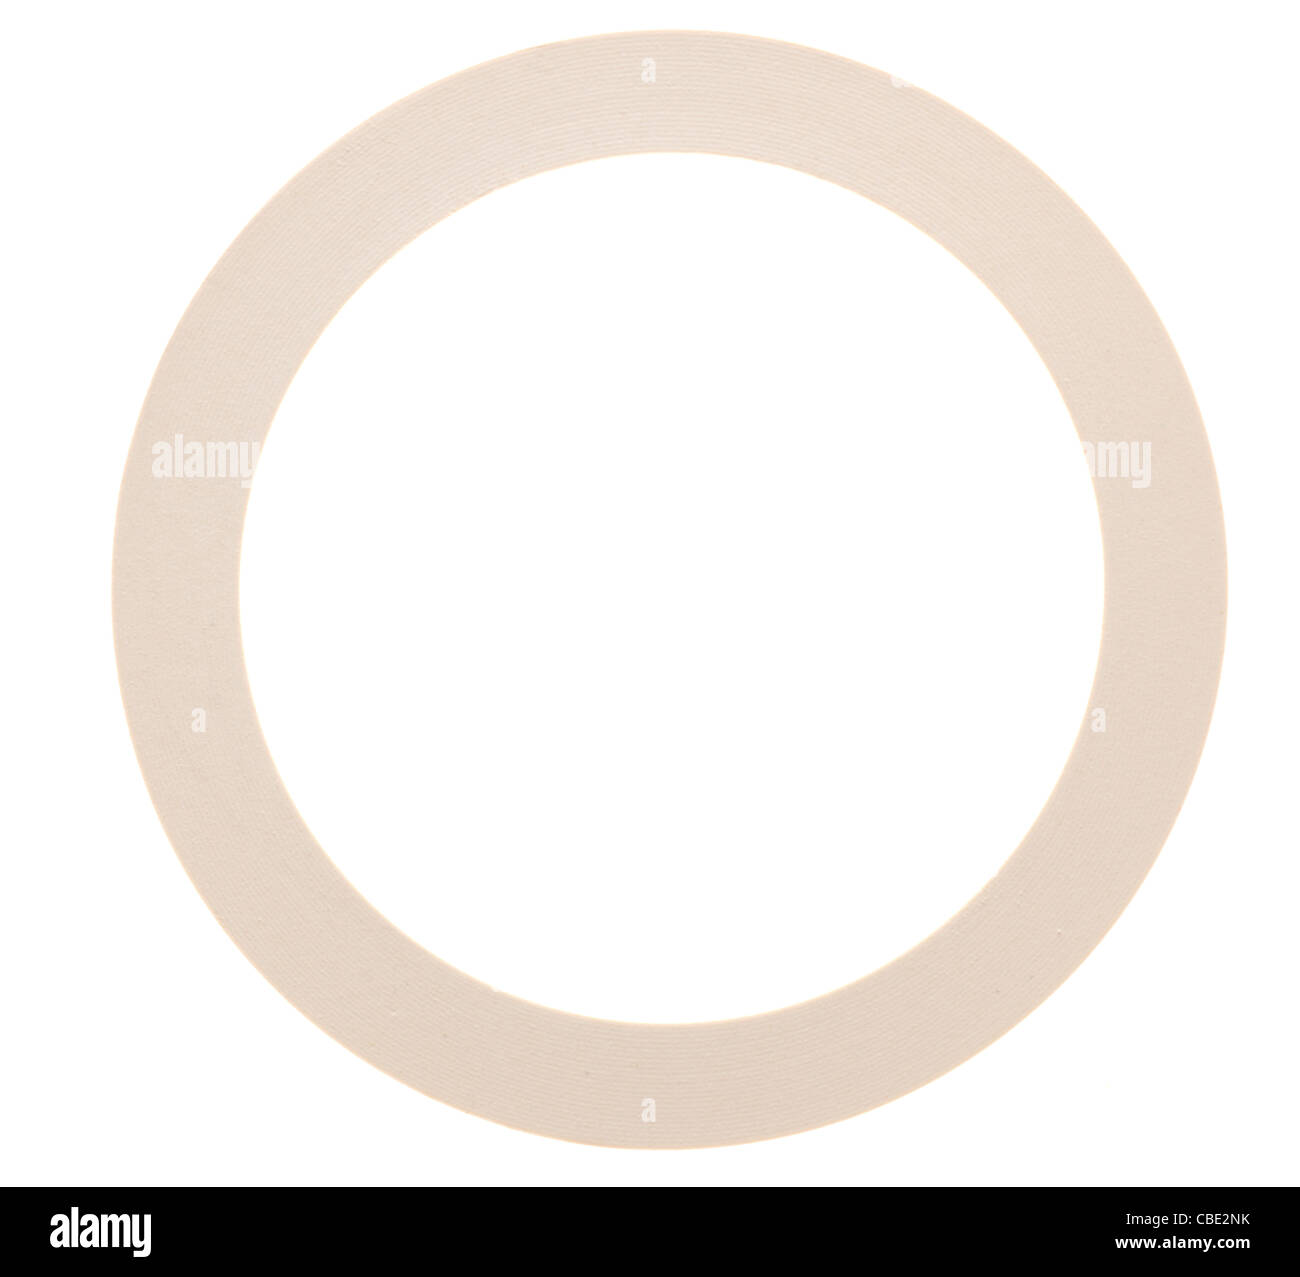 Rubber gasket - Stock Image